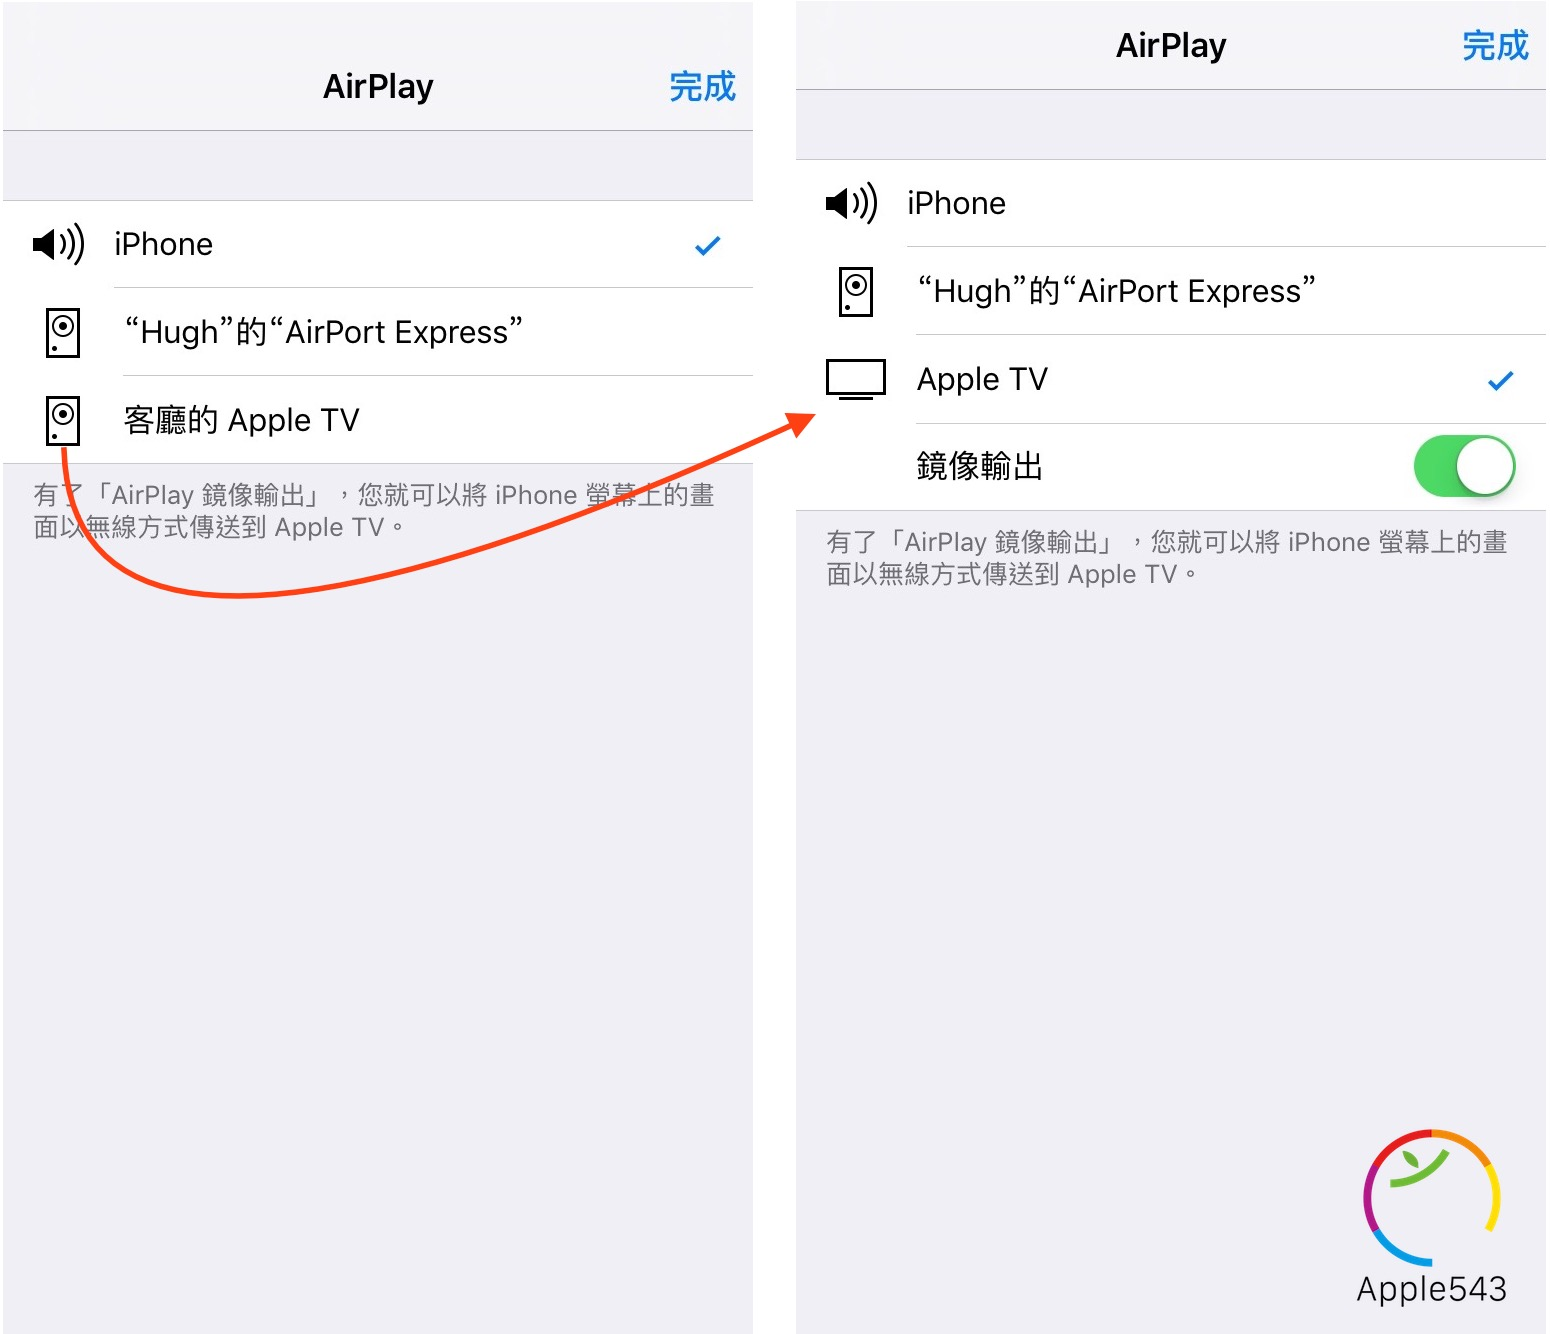 Apple TV 無法投影